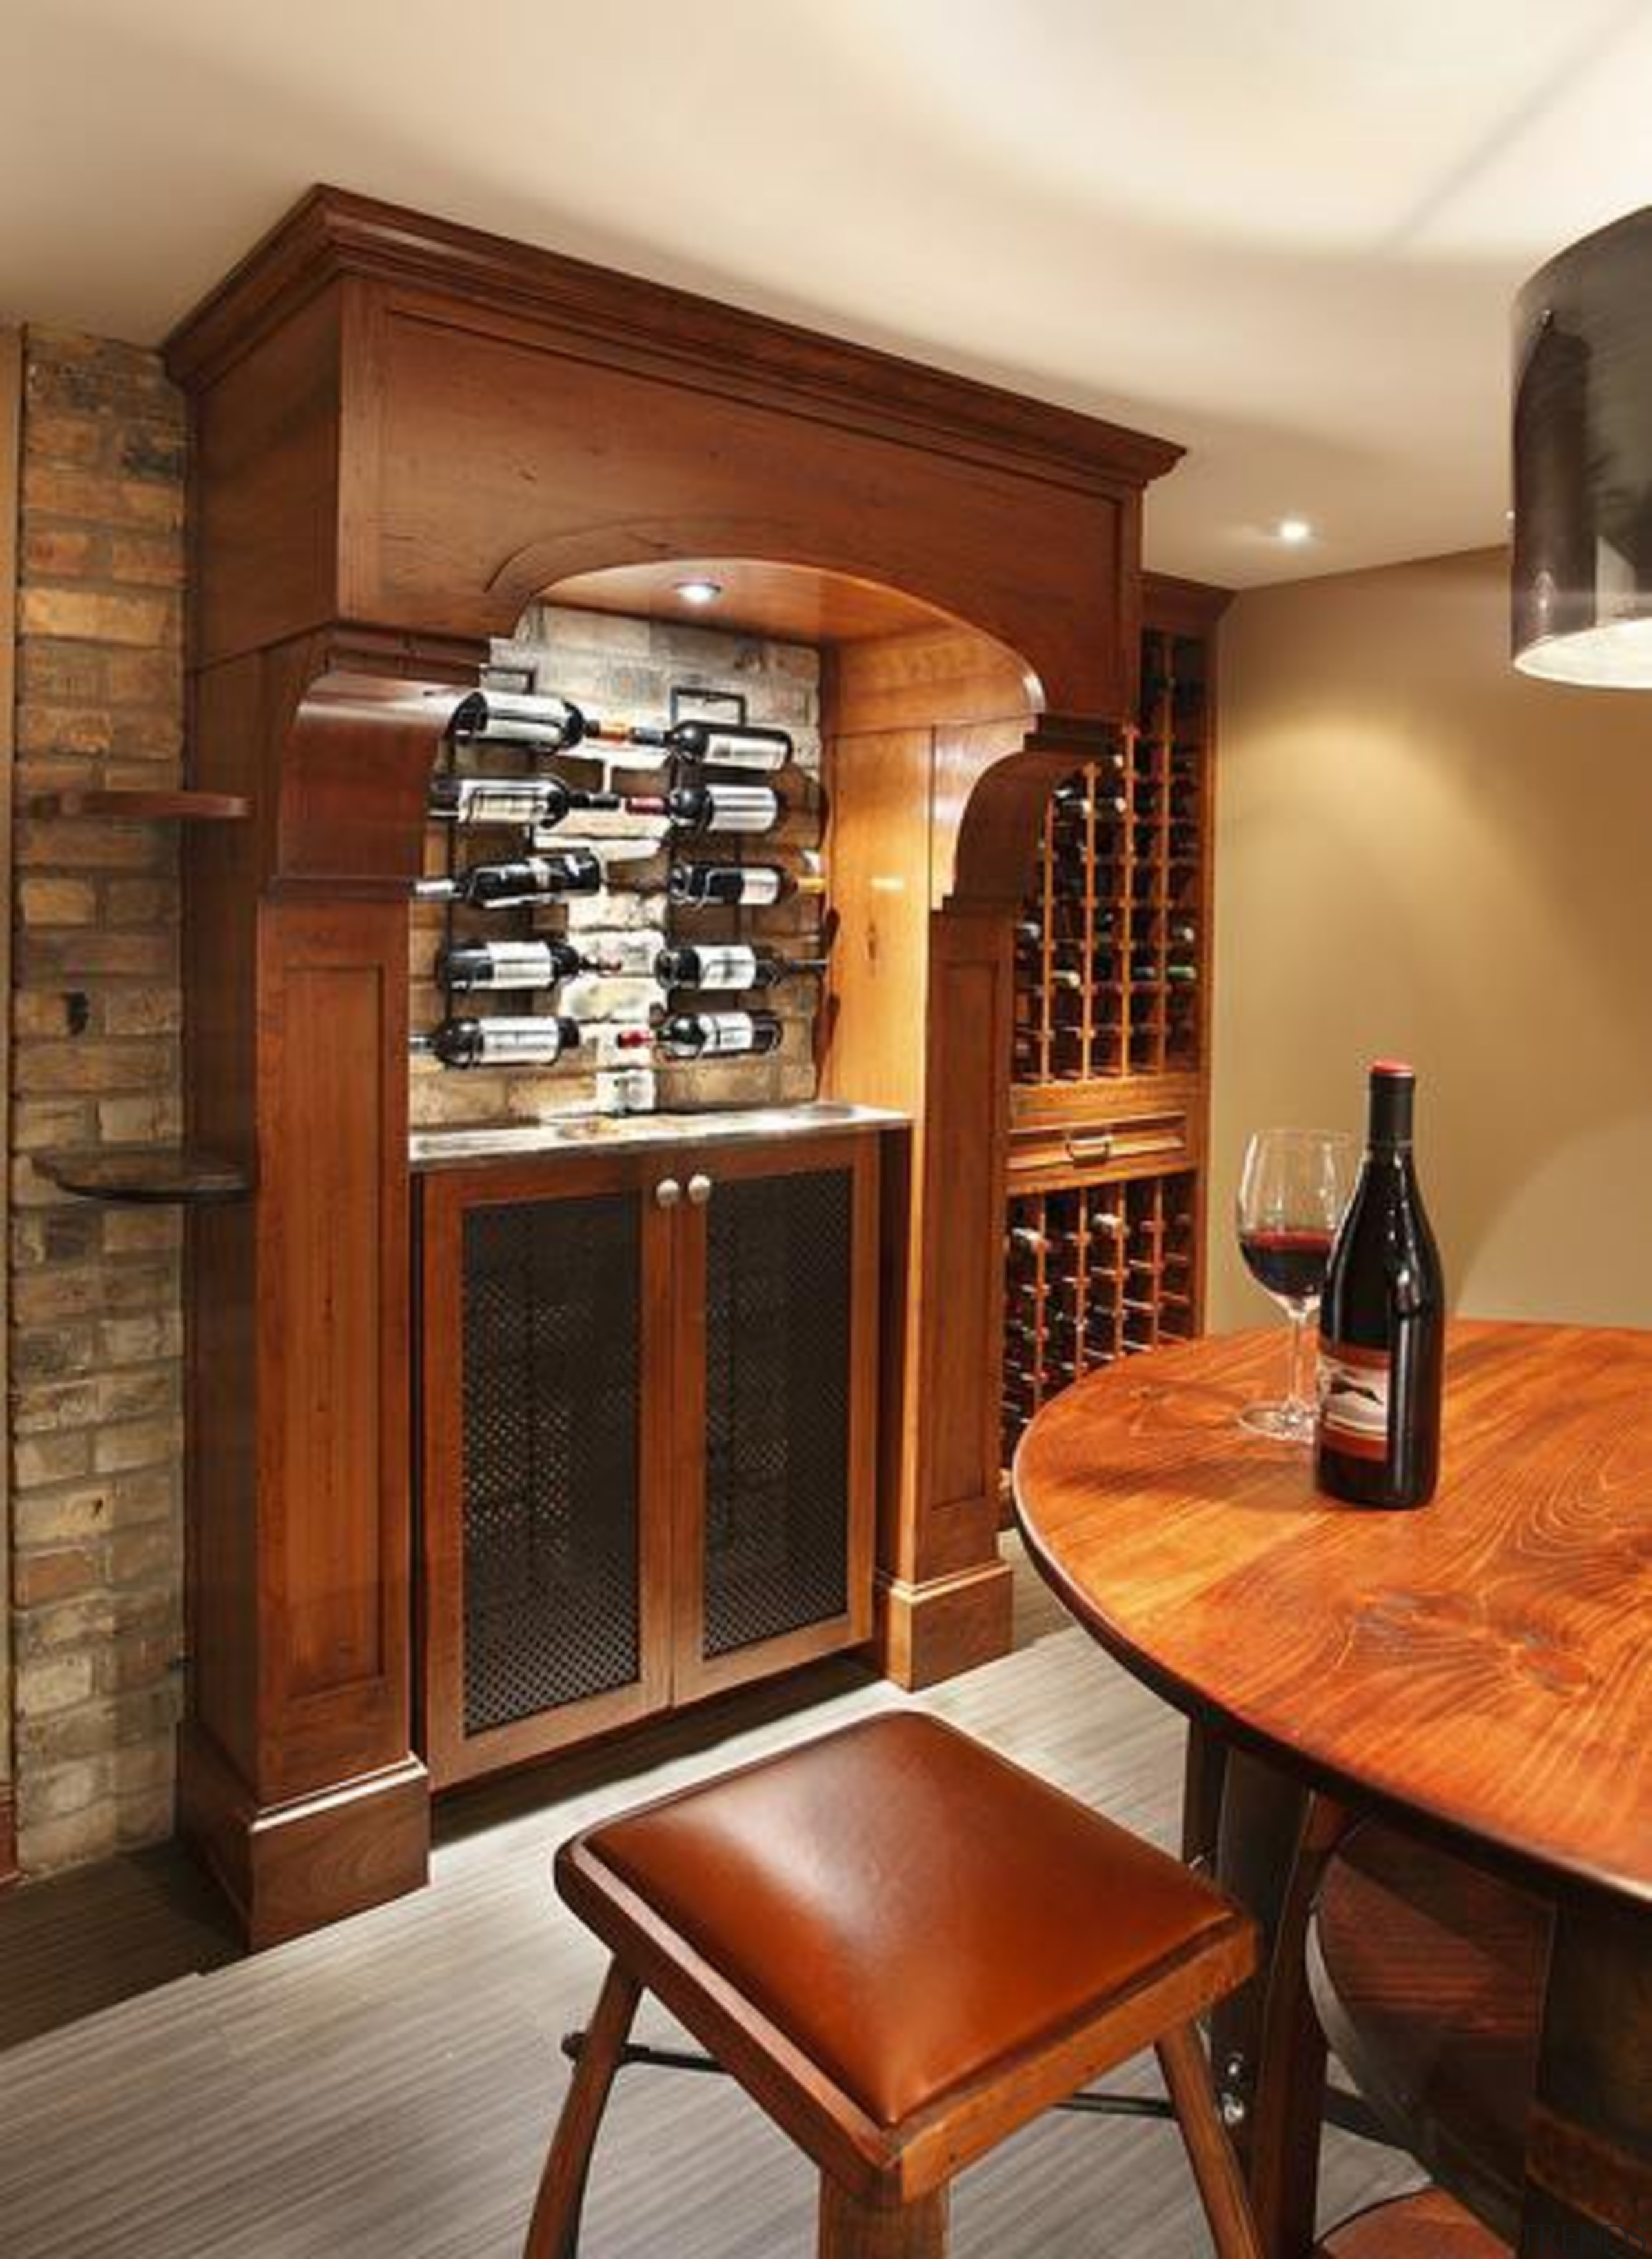 Because of its expansive and wide-open layout, a bookcase, cabinetry, furniture, interior design, shelf, shelving, wine cellar, brown, orange